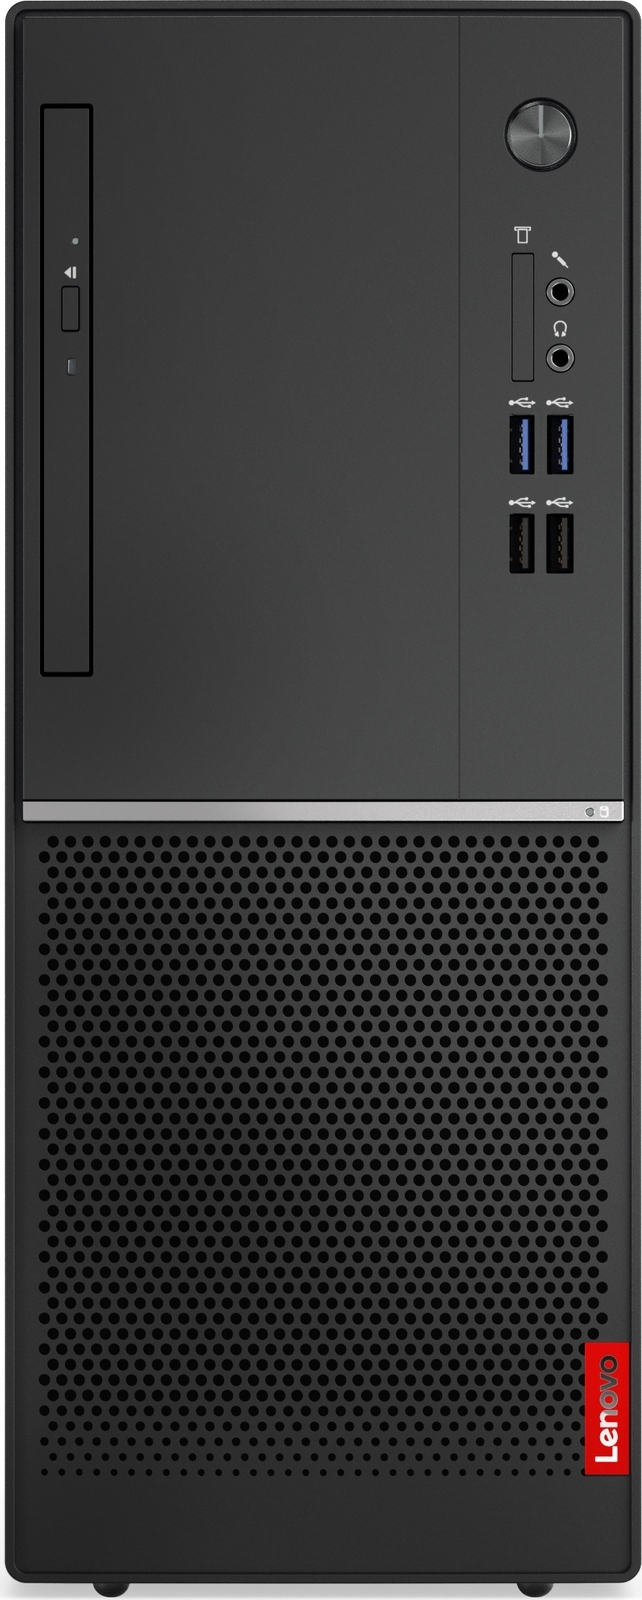 Системный блок Lenovo V520-15IKL MT, 10NK0057RU, черный пк lenovo thinkcentre m710q tiny slim i3 7100t 4gb 500gb 7 2k hdg630 w10pro64 kb m черный